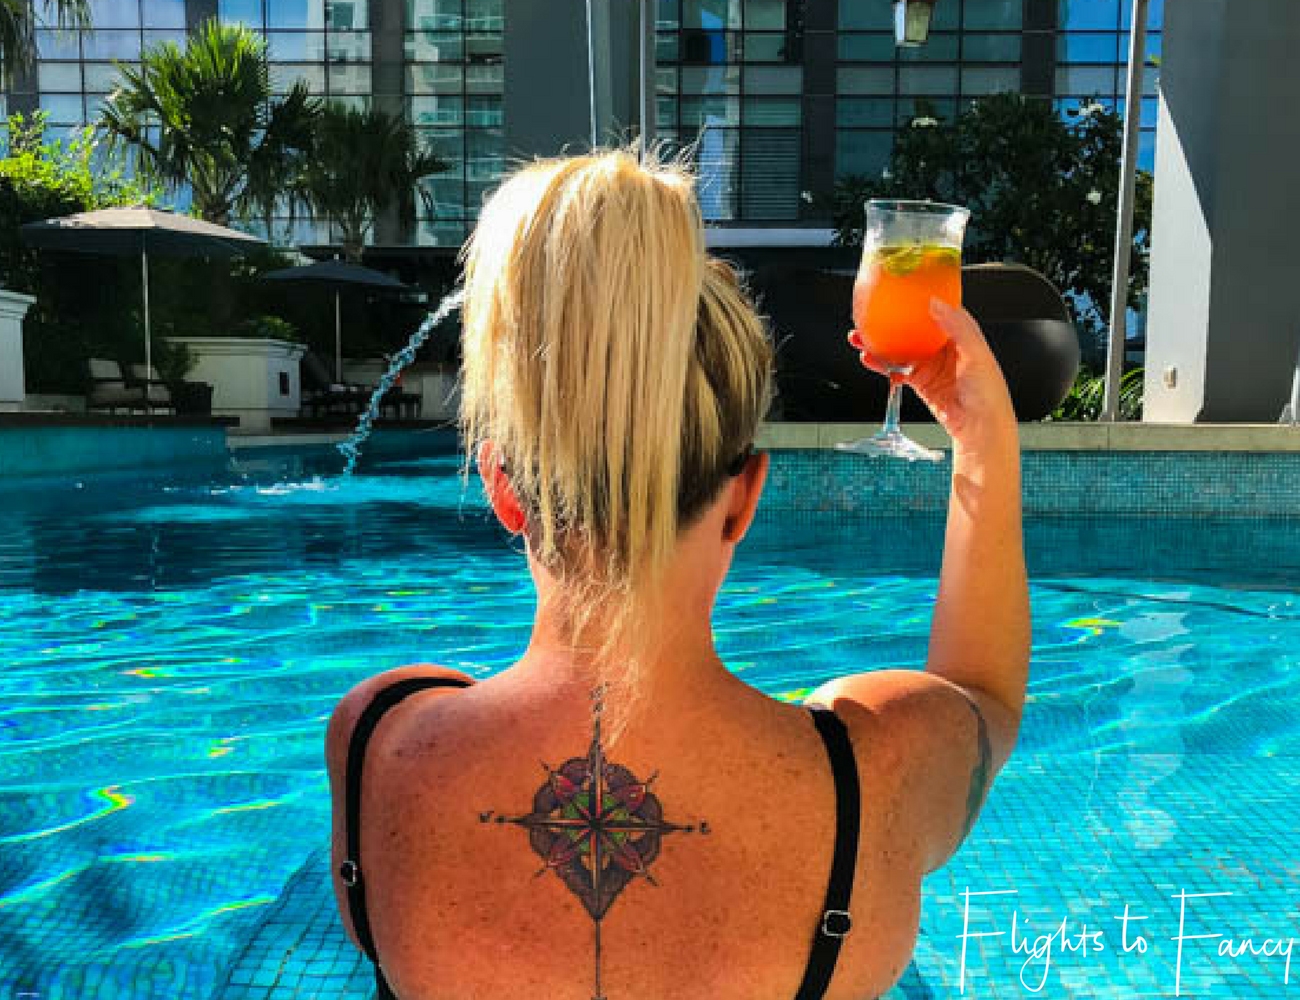 Flights To Fancy @ Raffles Makati - Afternoon cocktails by the pool are my thing. Cheers!